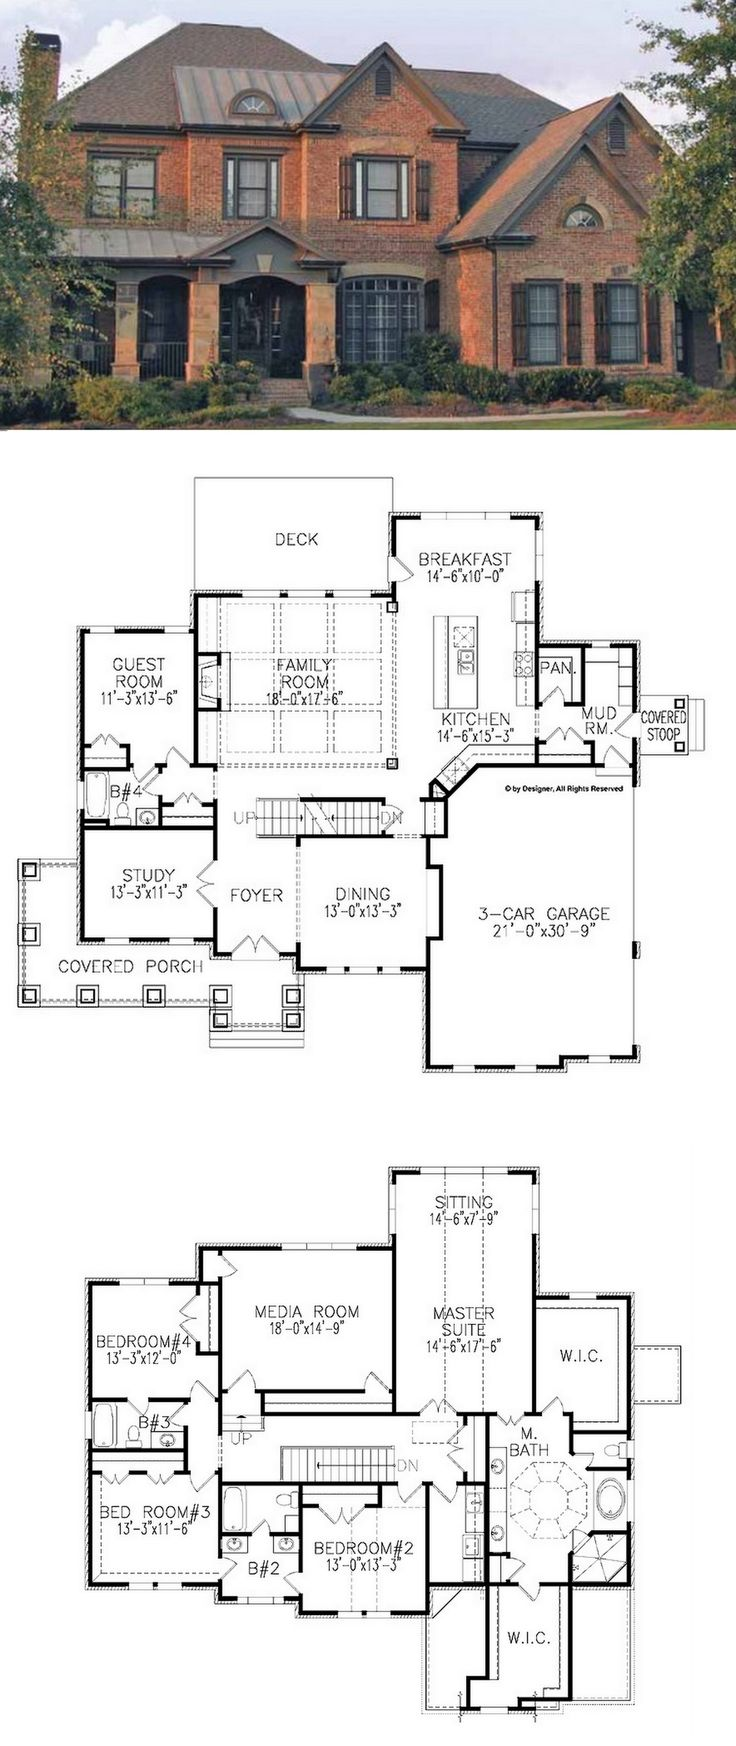 5 bedroom 3 bathroom house plans - Traditional House Plan With 3962 Square Feet And 5 Bedrooms From Dream Home Source House